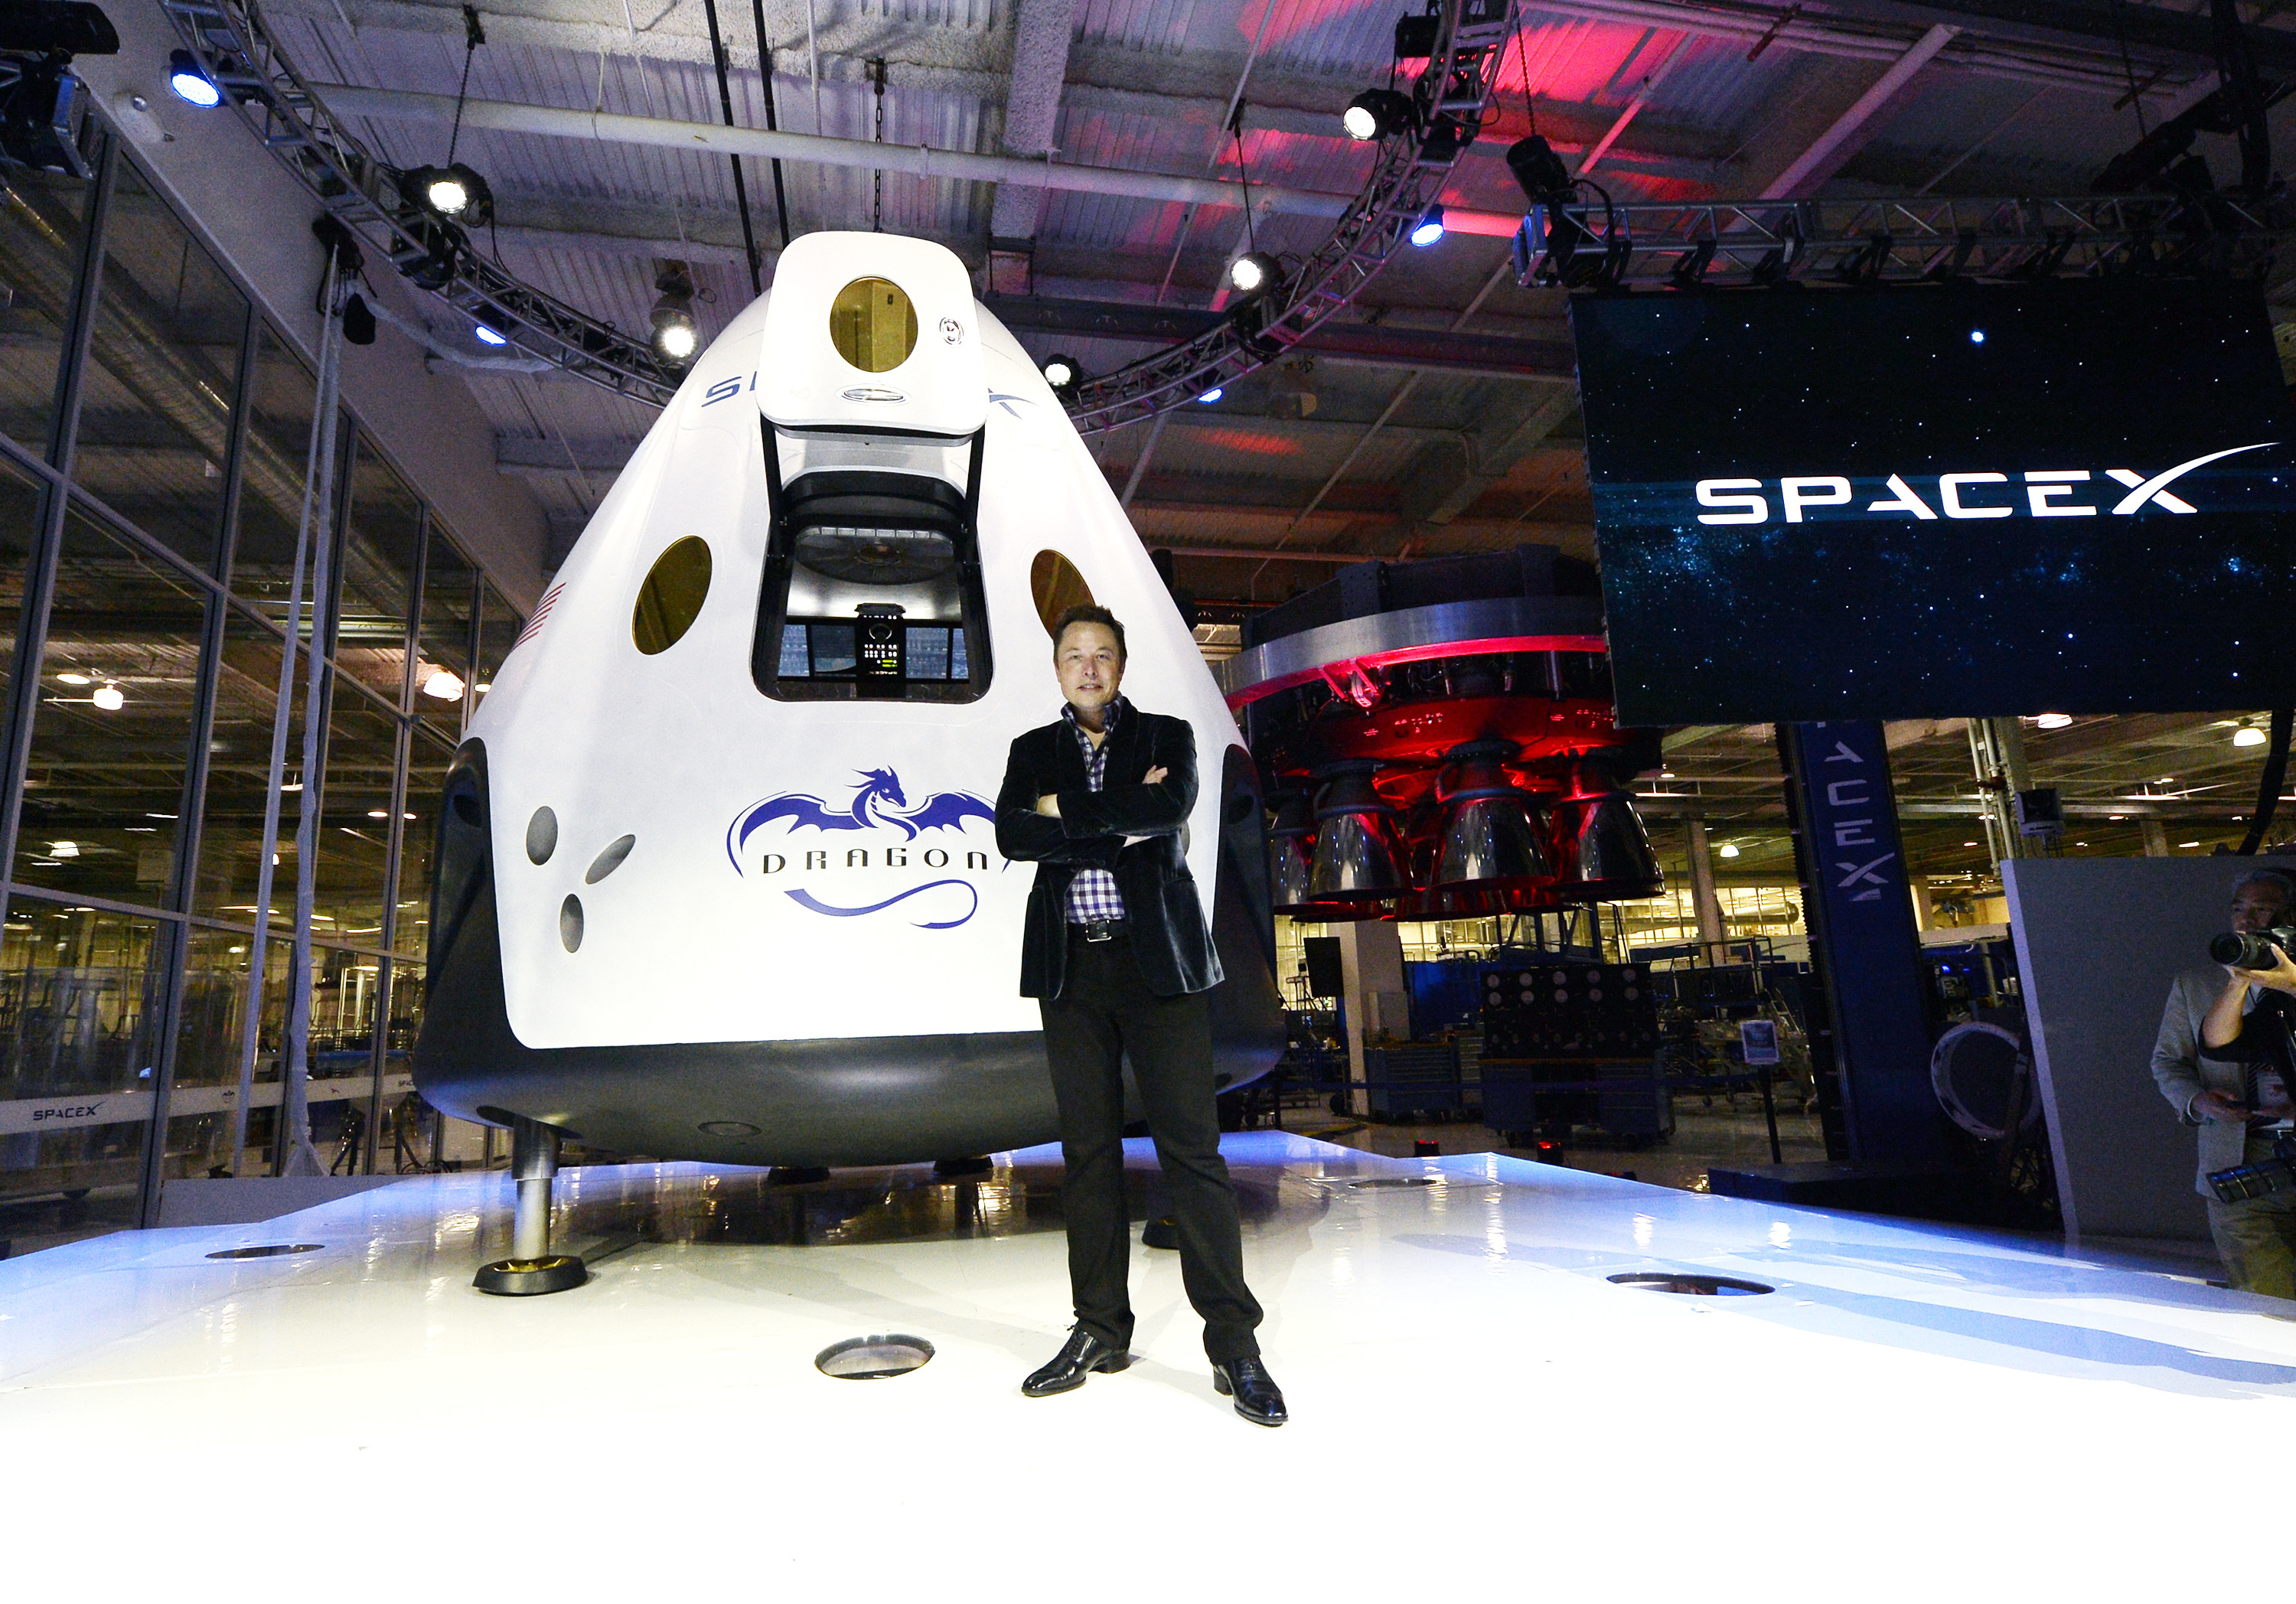 SpaceX 'to fly 2 people to moon in 2018'